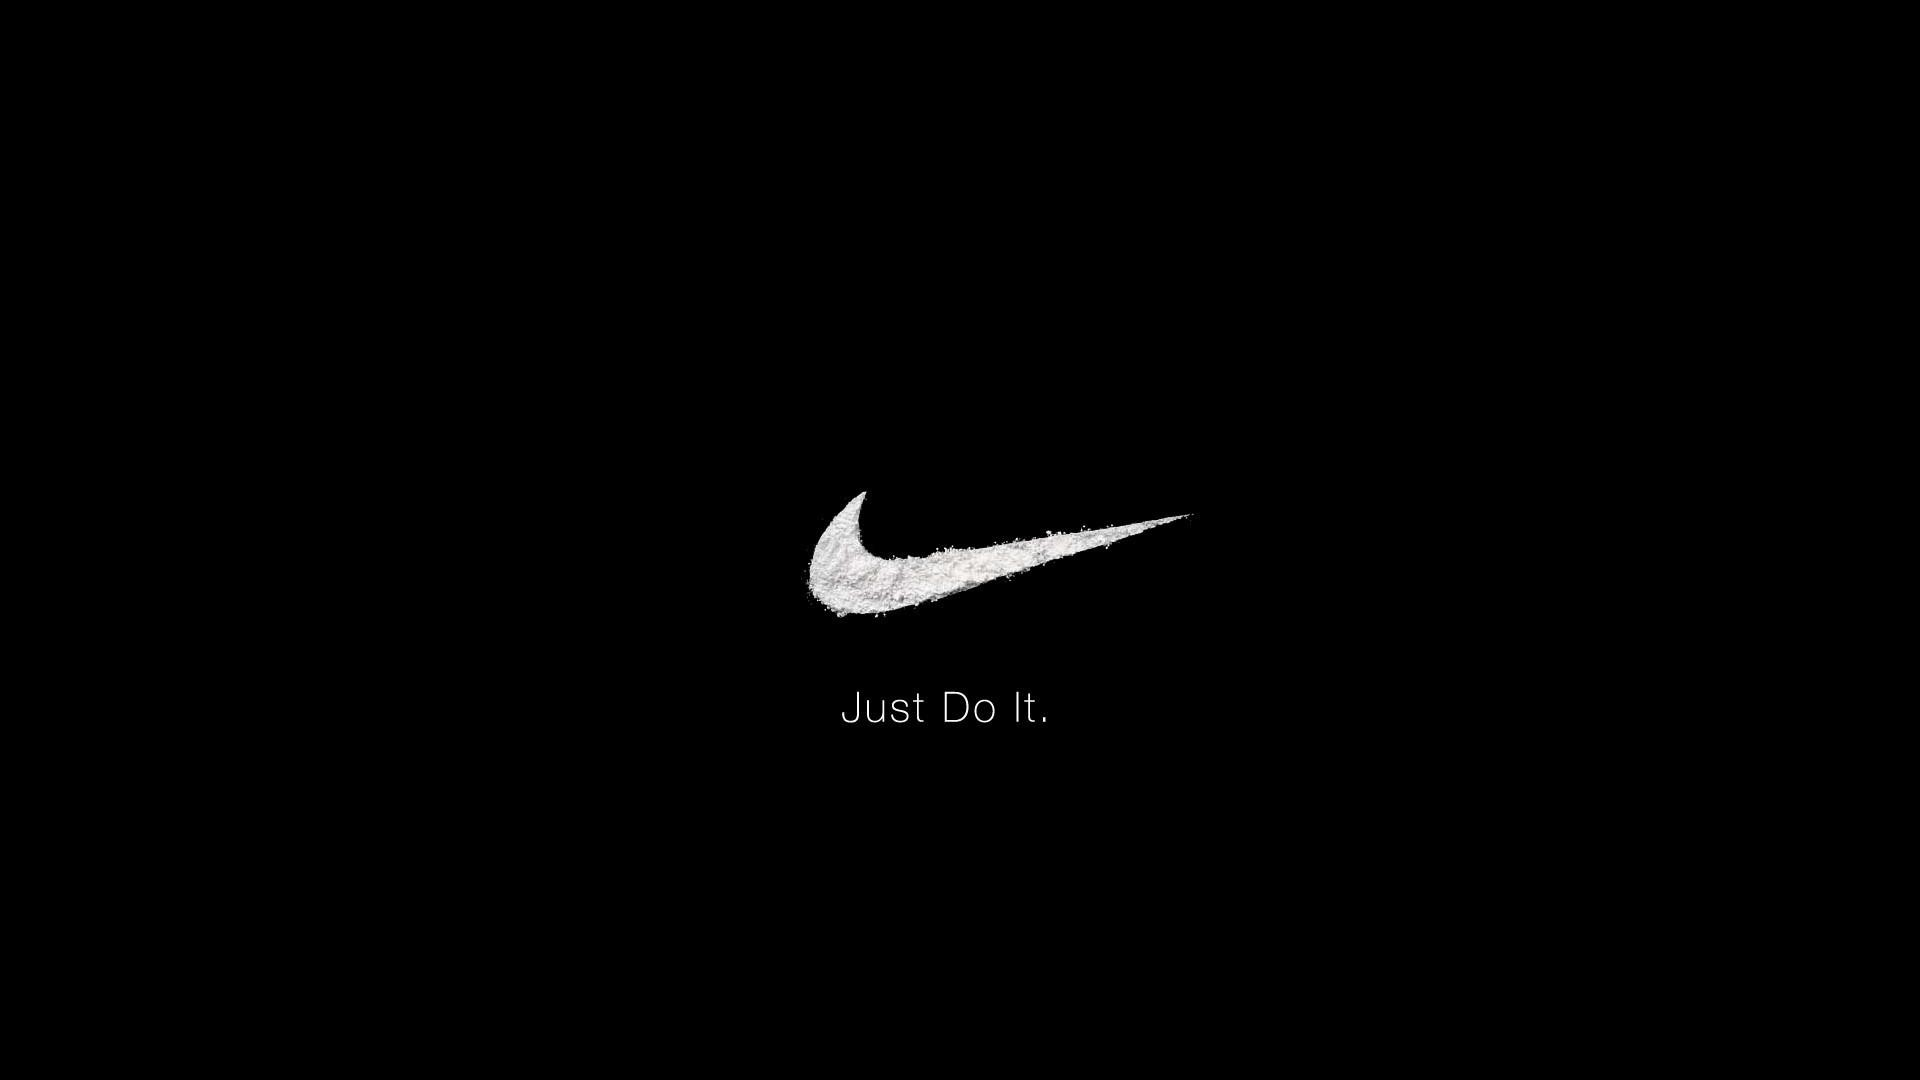 Nike-Wallpapers-HD-just-do-it